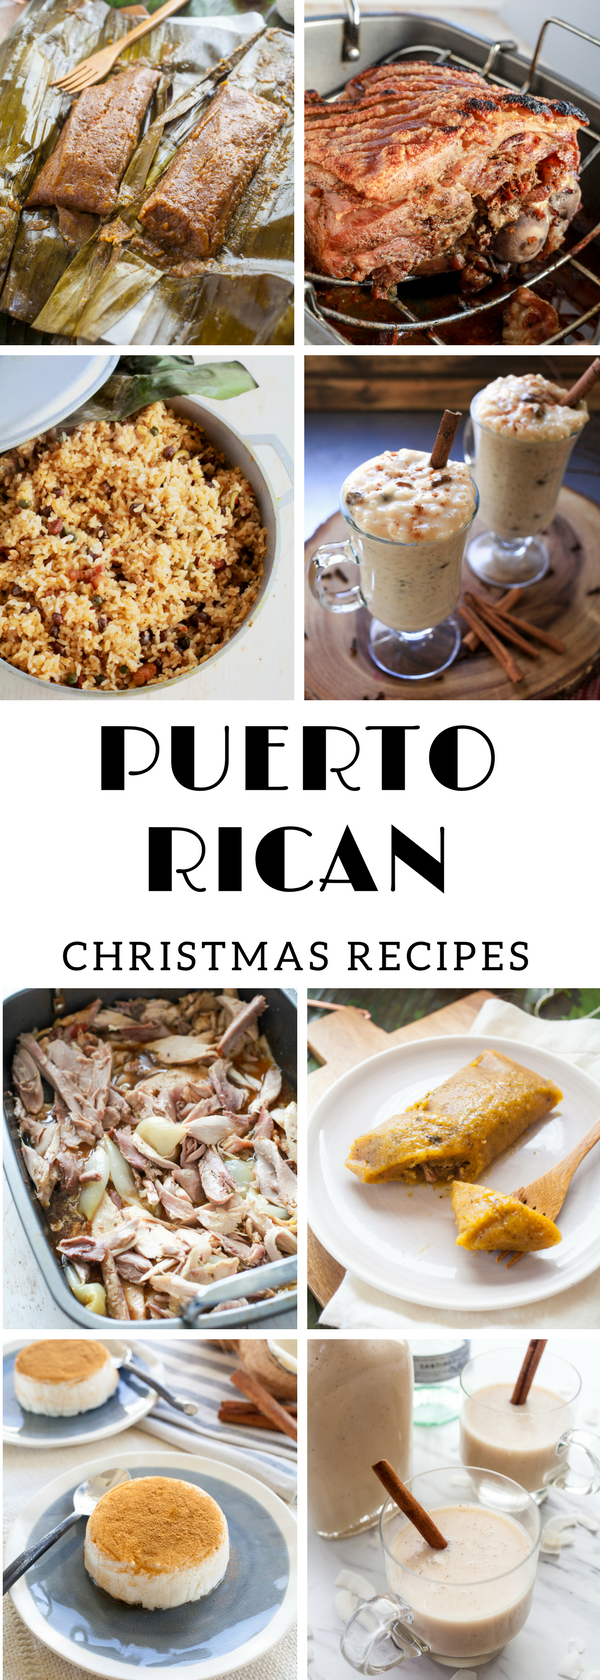 Puerto rican christmas recipes pinterest puerto ricans recipes puerto rican christmas recipes the noshery forumfinder